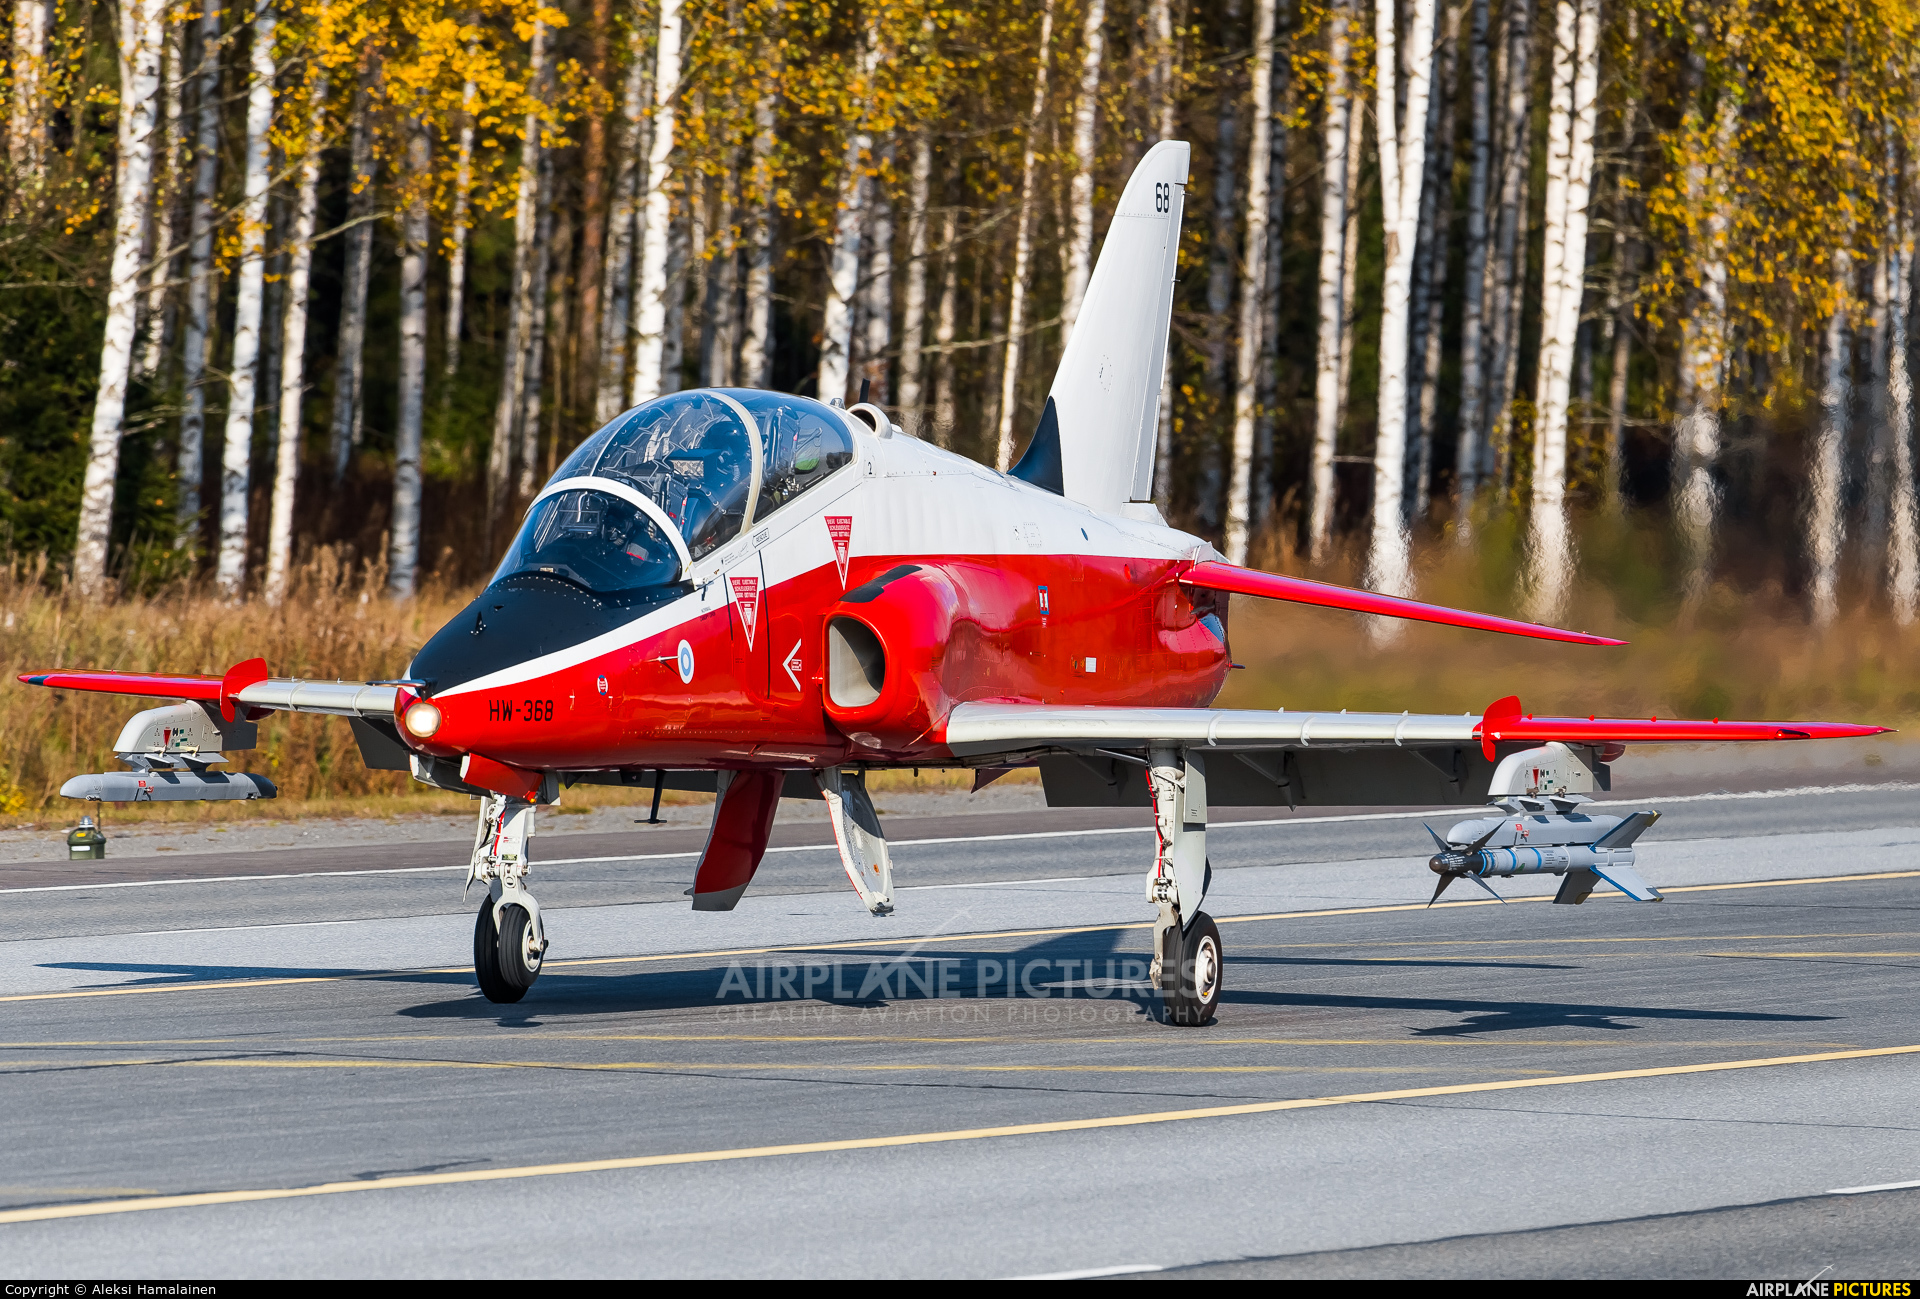 Finland - Air Force HW-368 aircraft at Off Airport - Lusi Highway Strip